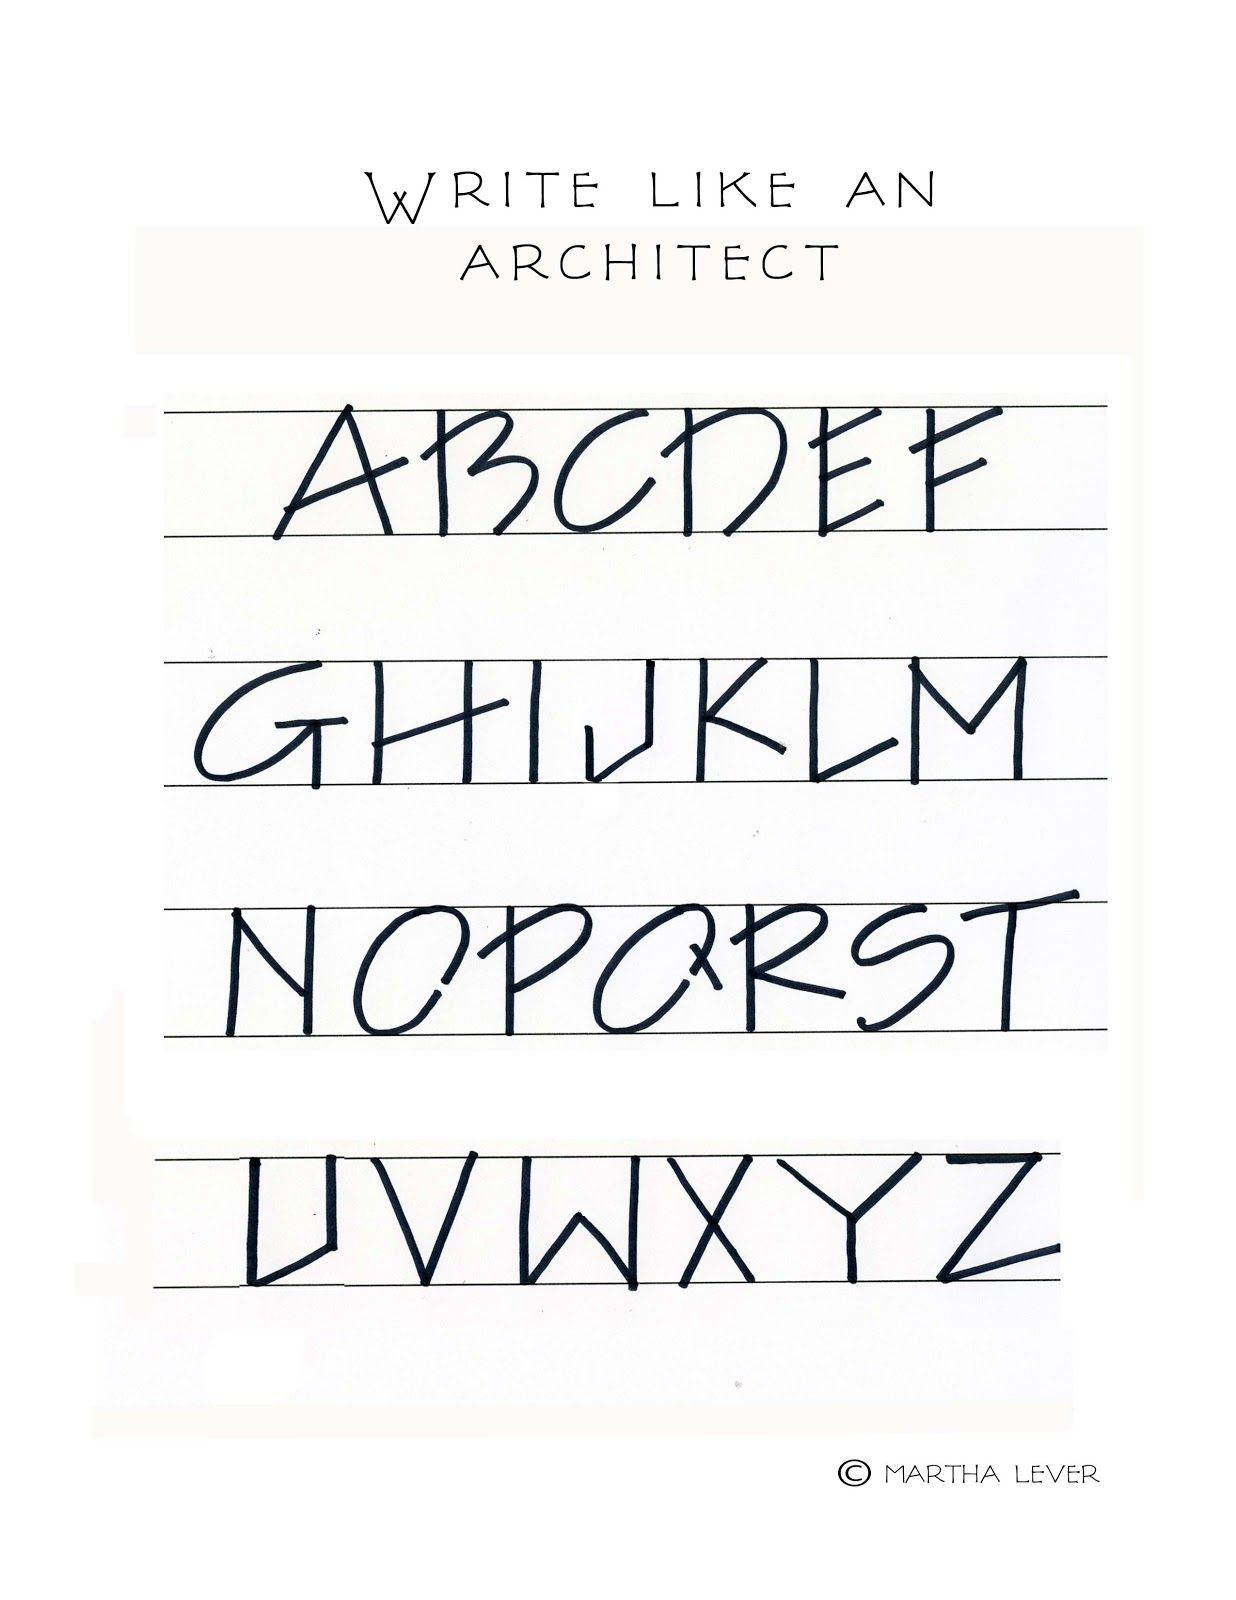 Pin by Sasha on Productivity | Architectural lettering ... |Architectural Lettering Samples